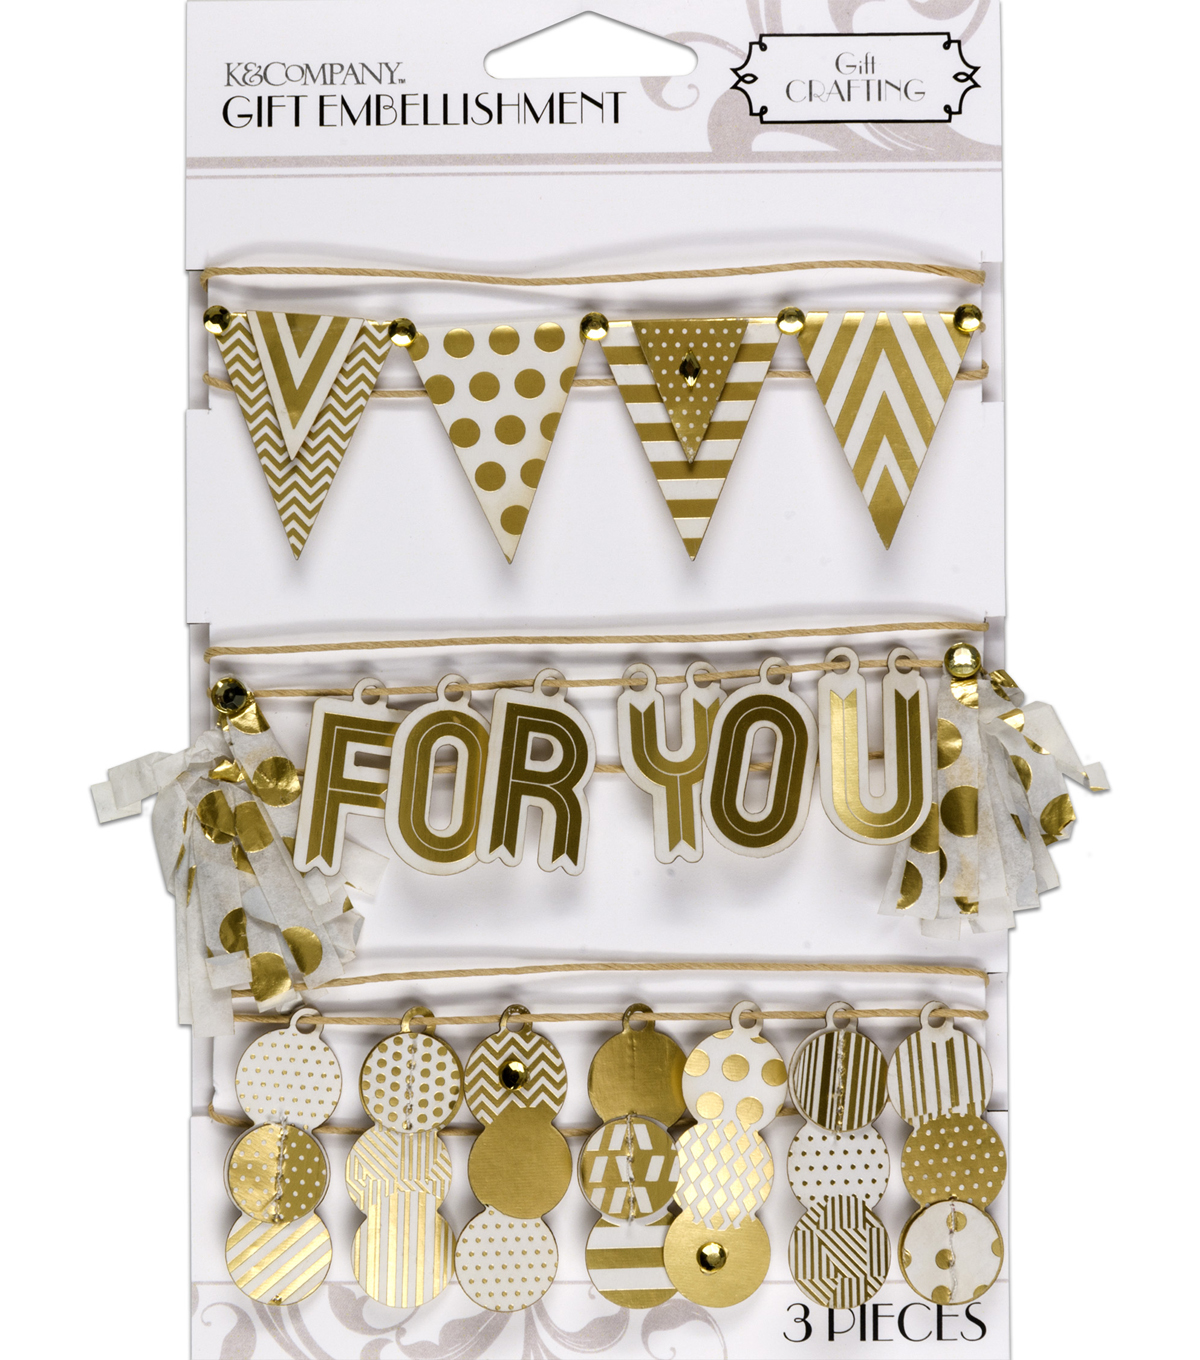 K&Company White And Gold Banner Gift Embellishment